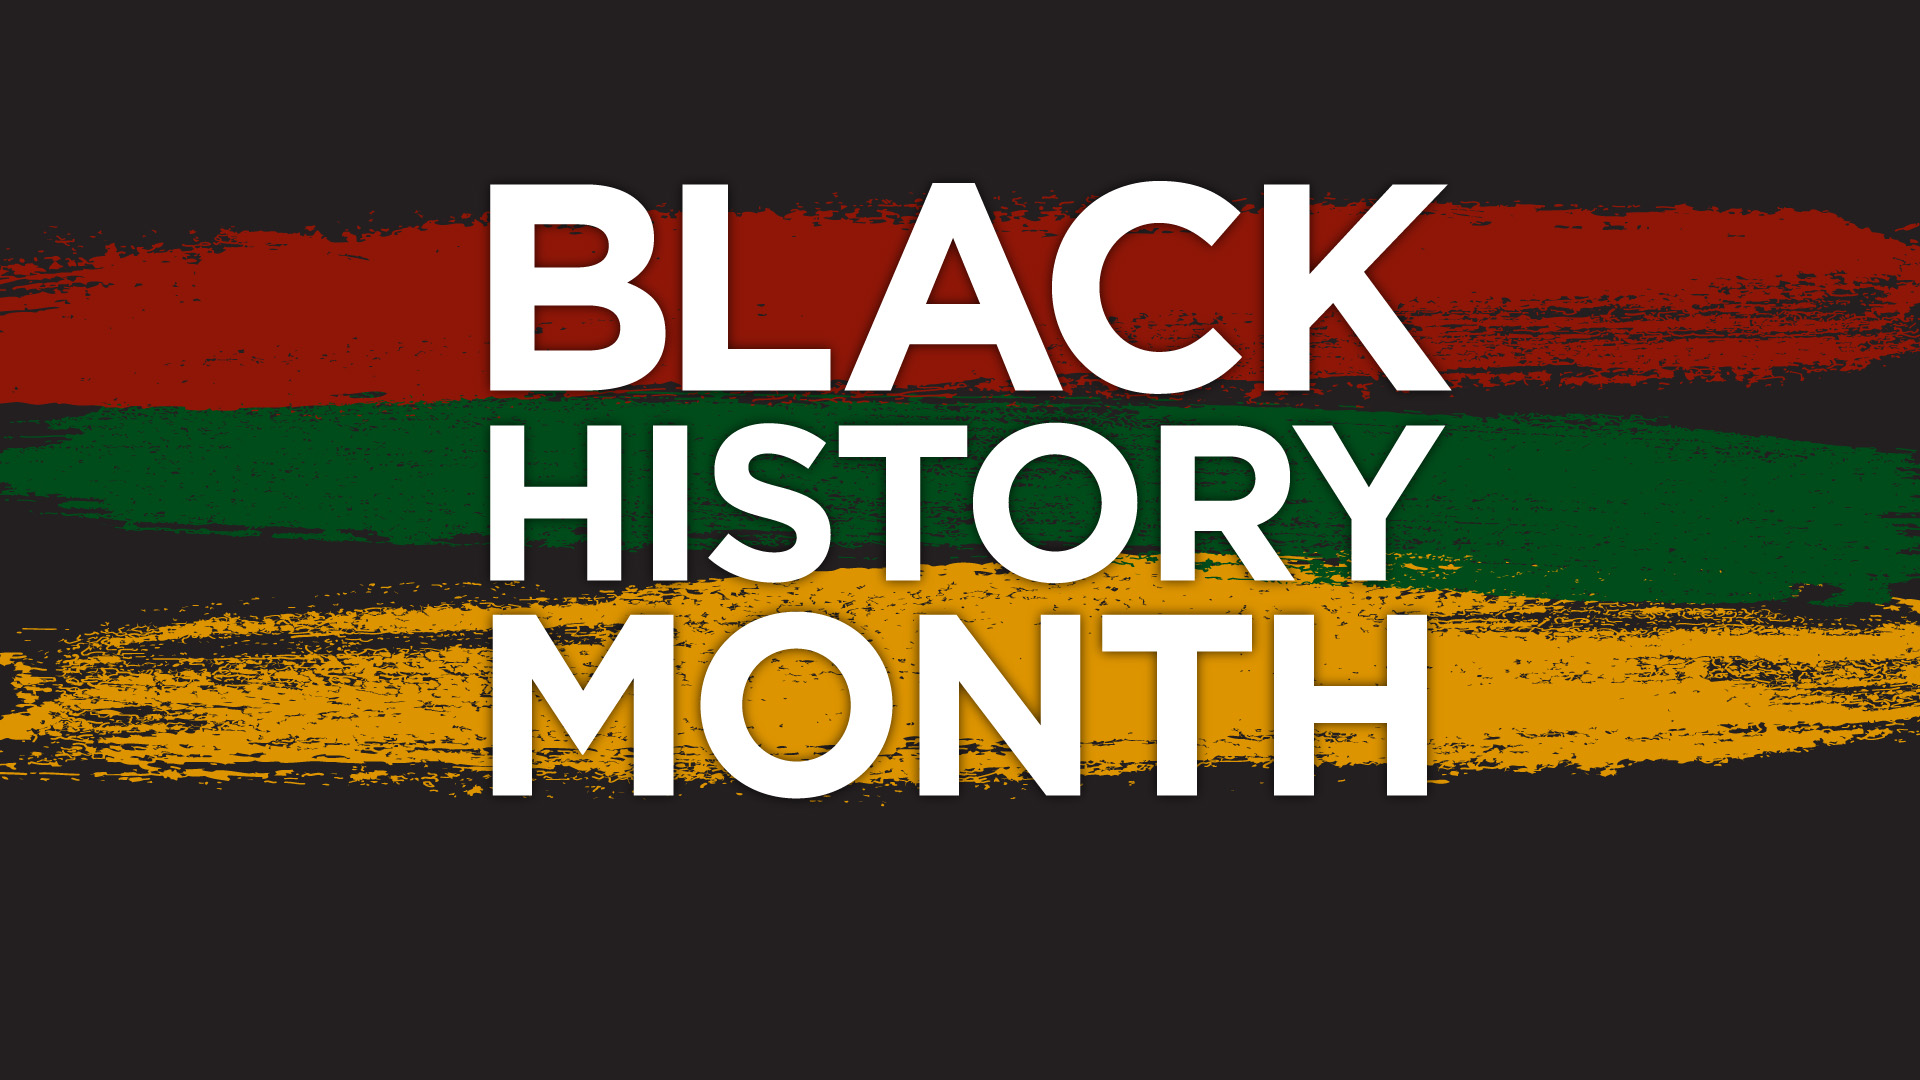 Black history month 2018 clipart jpg stock Black History Month — Grace Outreach jpg stock